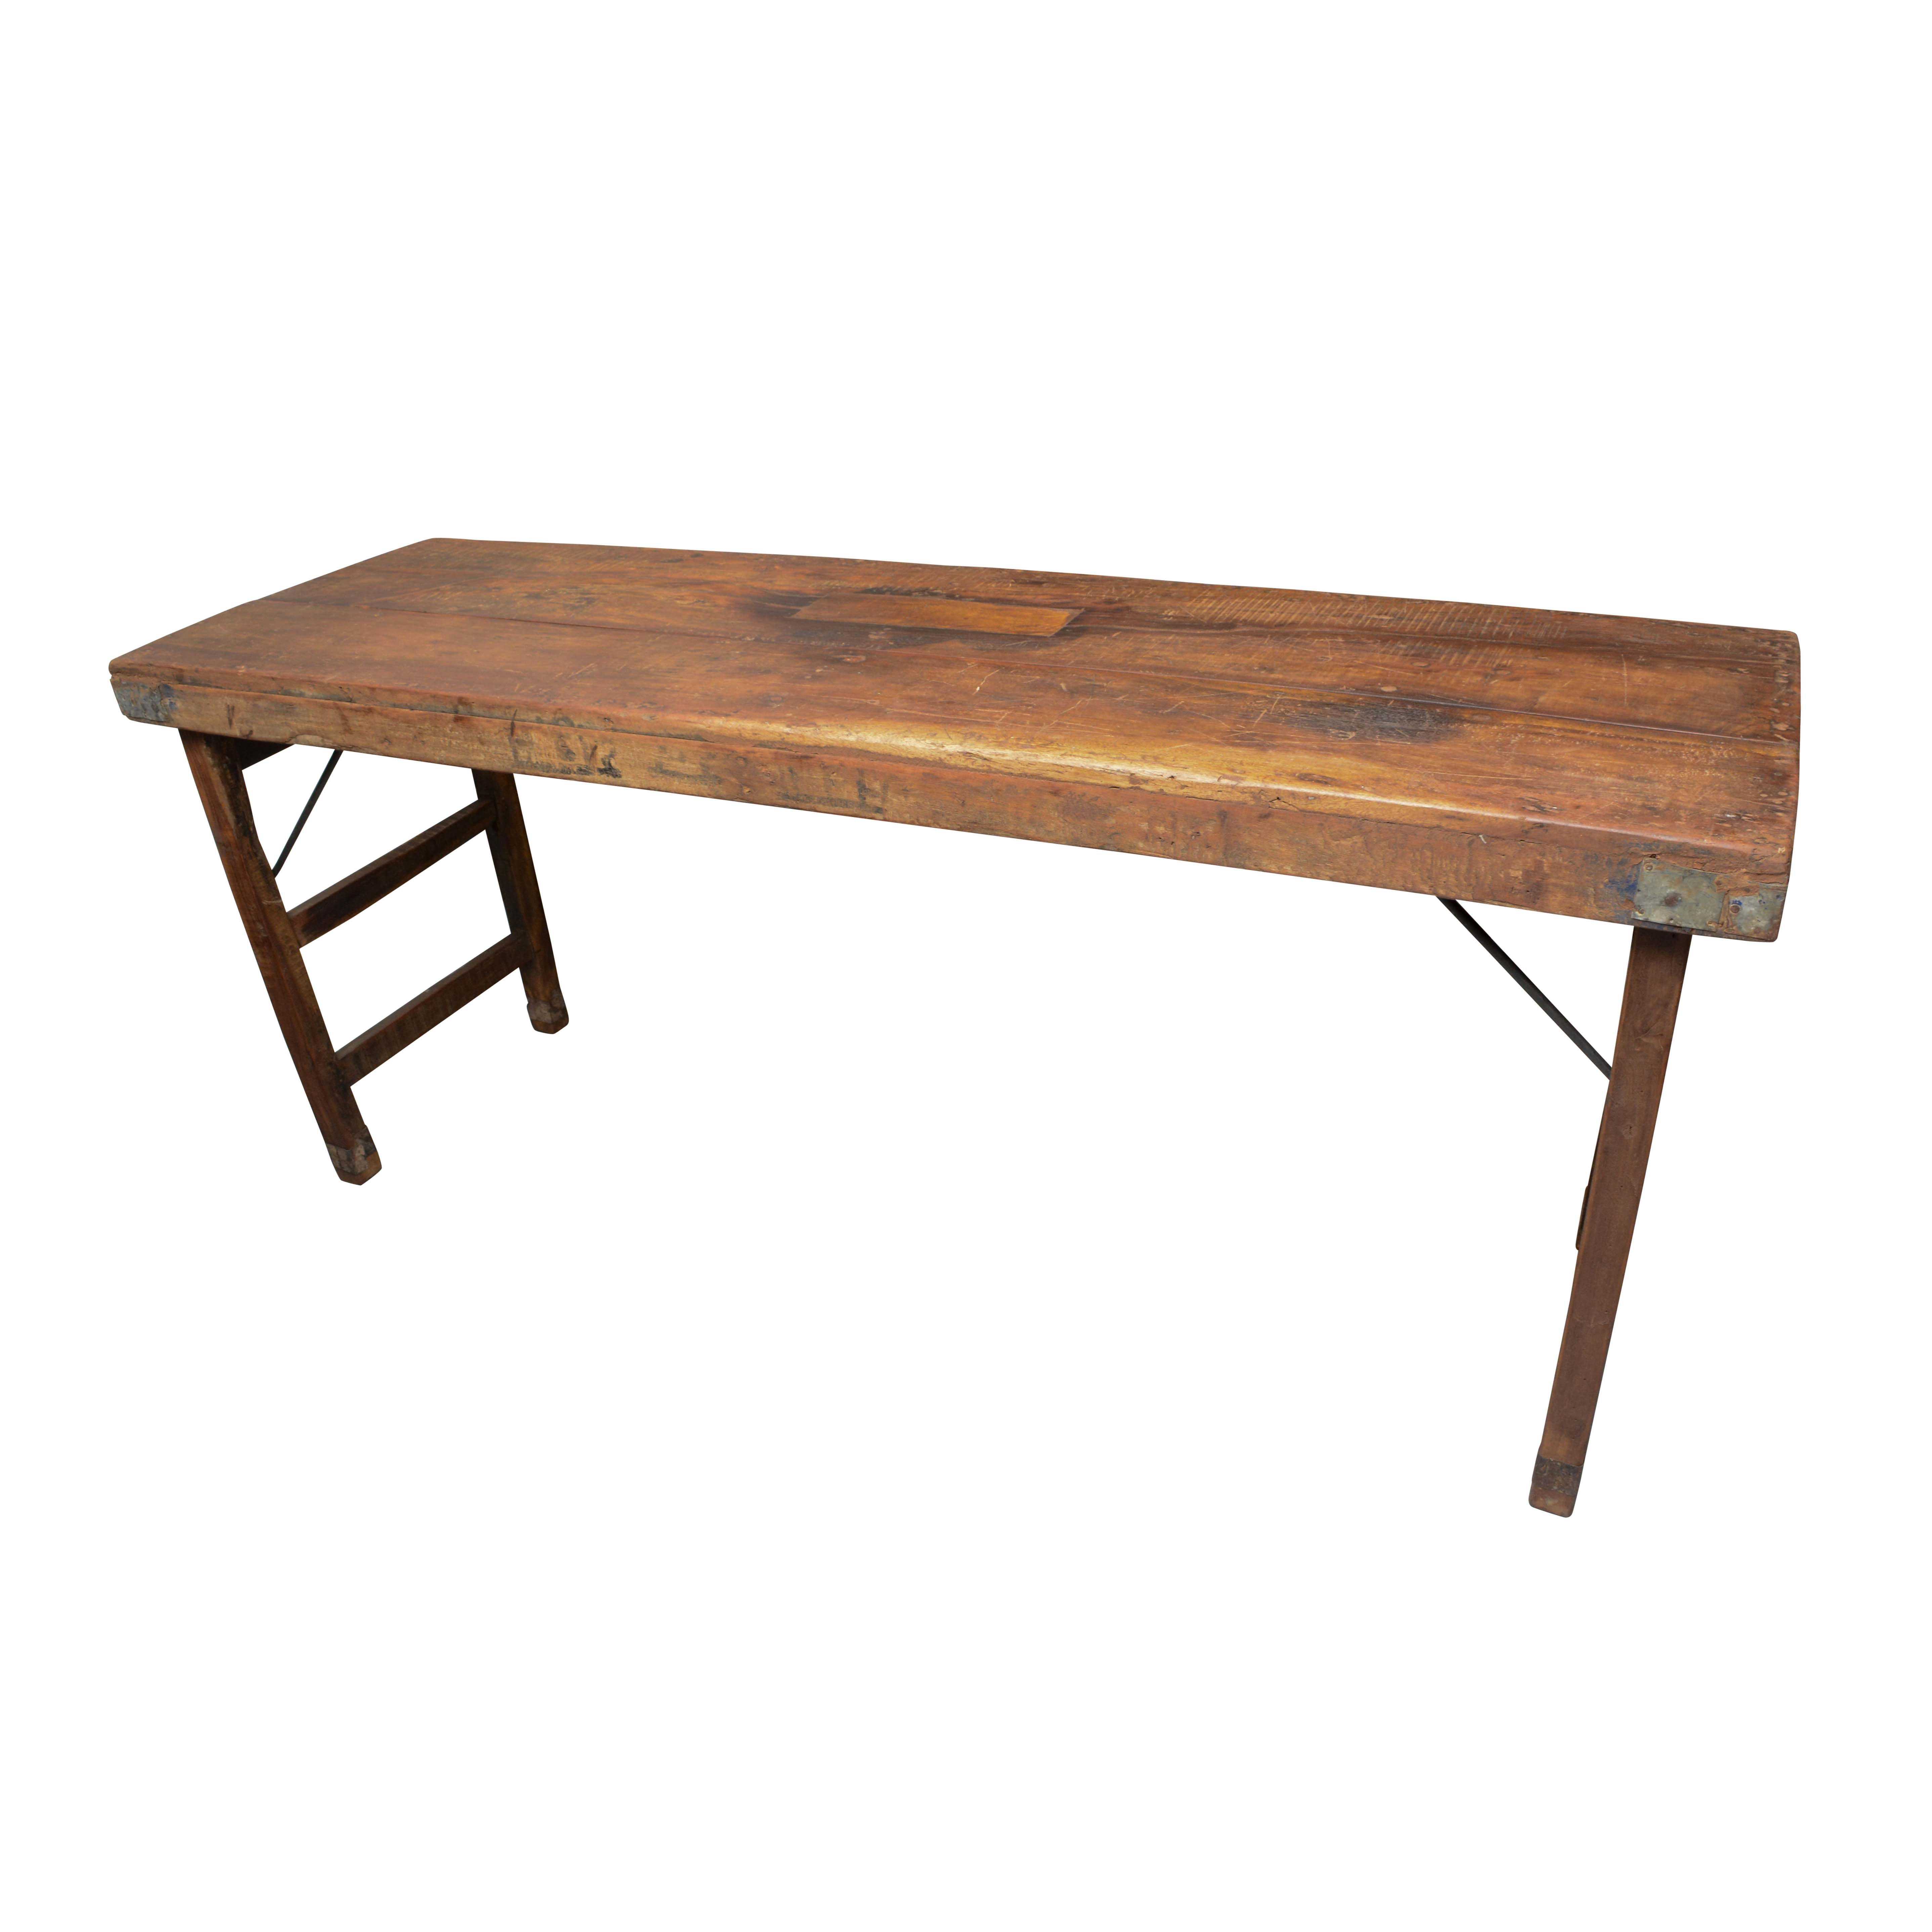 Rustic Style Wooden Folding Table